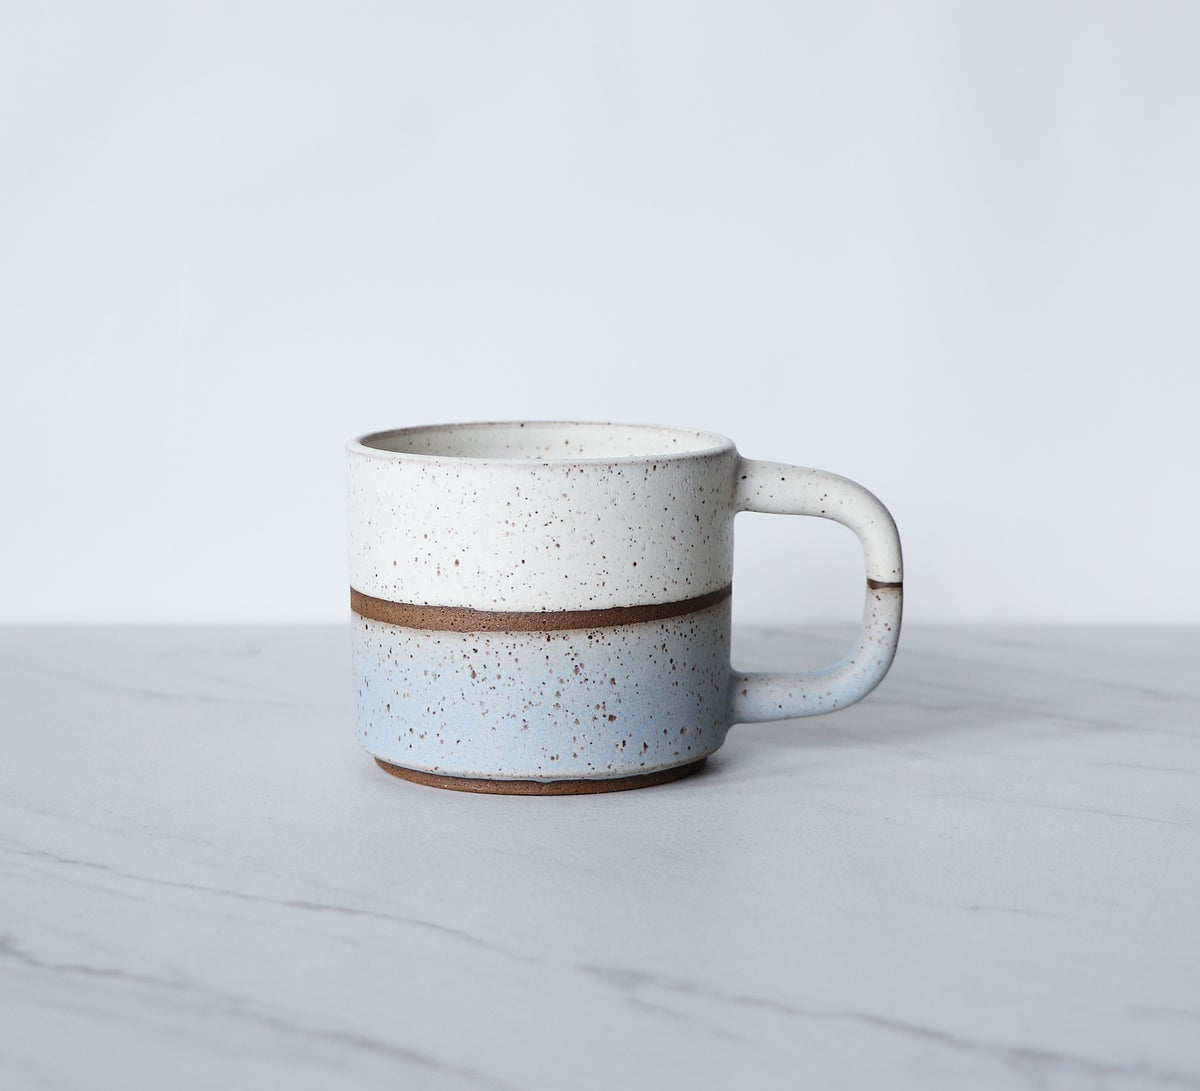 Image of Short coffee mug, speckled clay glazed in cream + ice